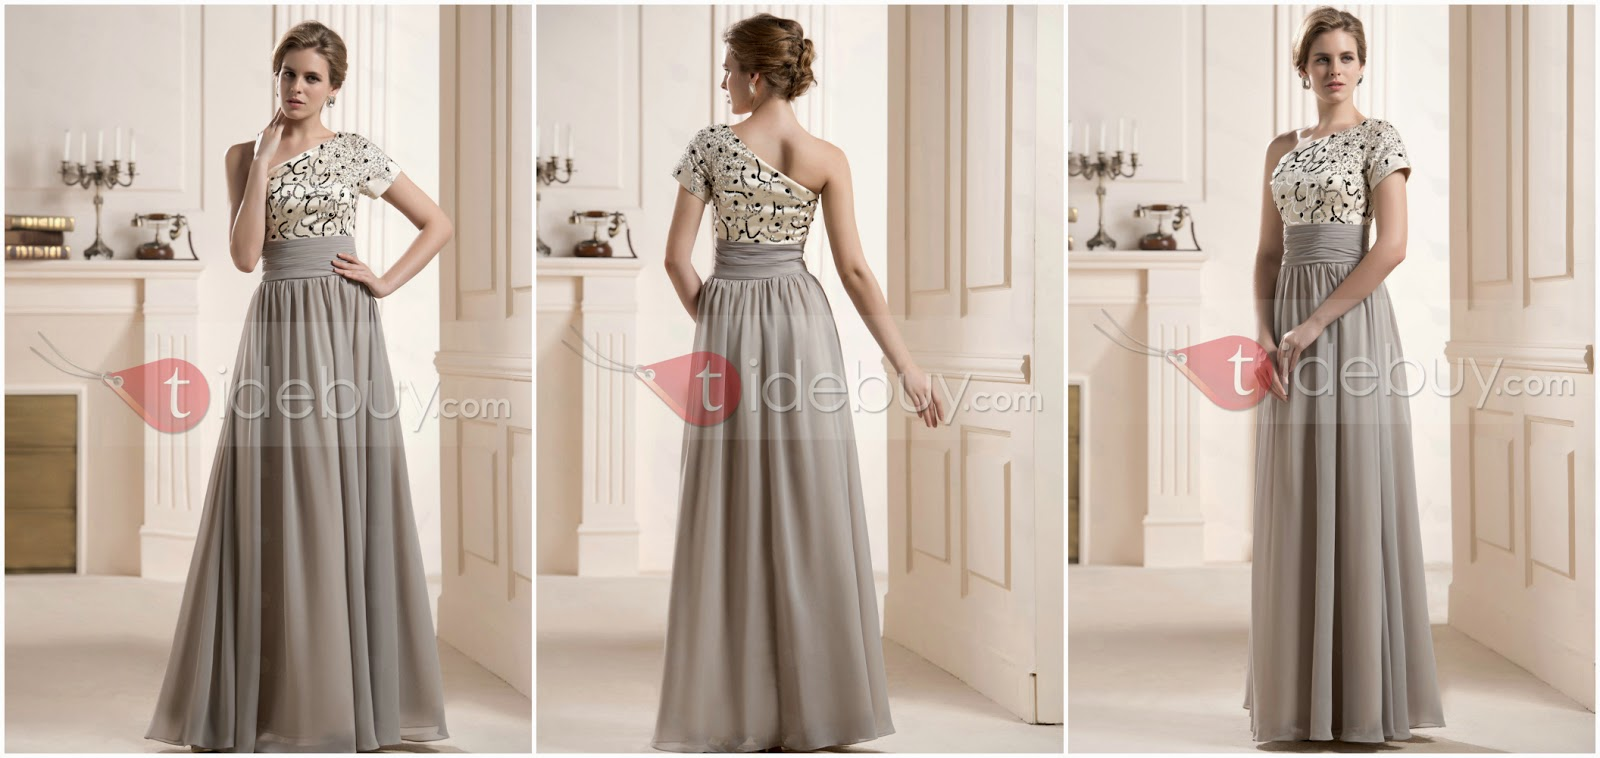 Faddish Sequins Beaded One-Shoulder Short Sleeve Floor-Length Mother of the Bride Dress from www.tidebuy.com